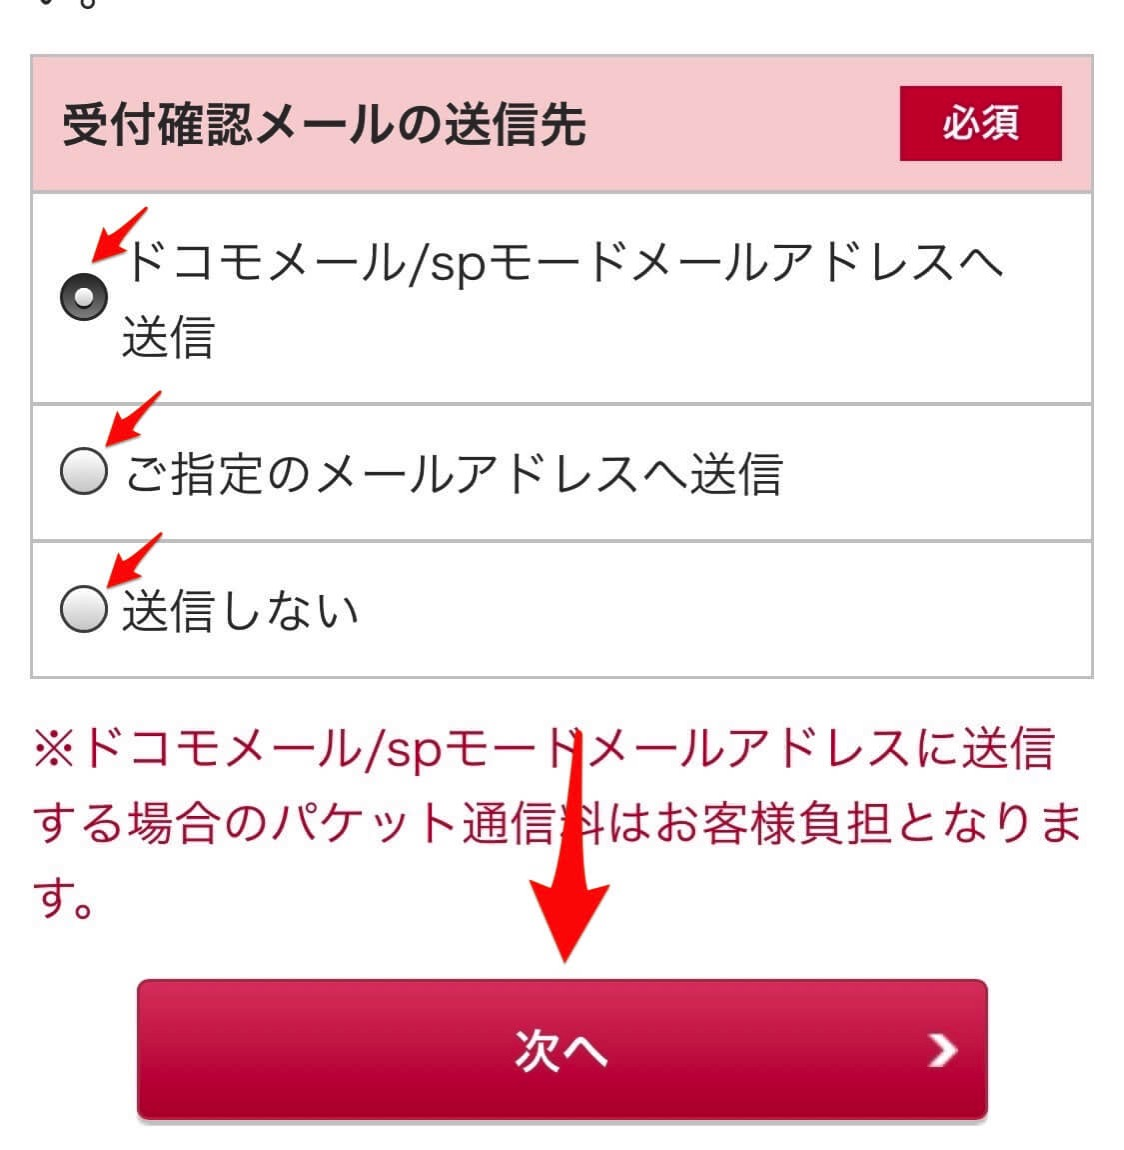 The docomo one number service cancellation of a contract 8